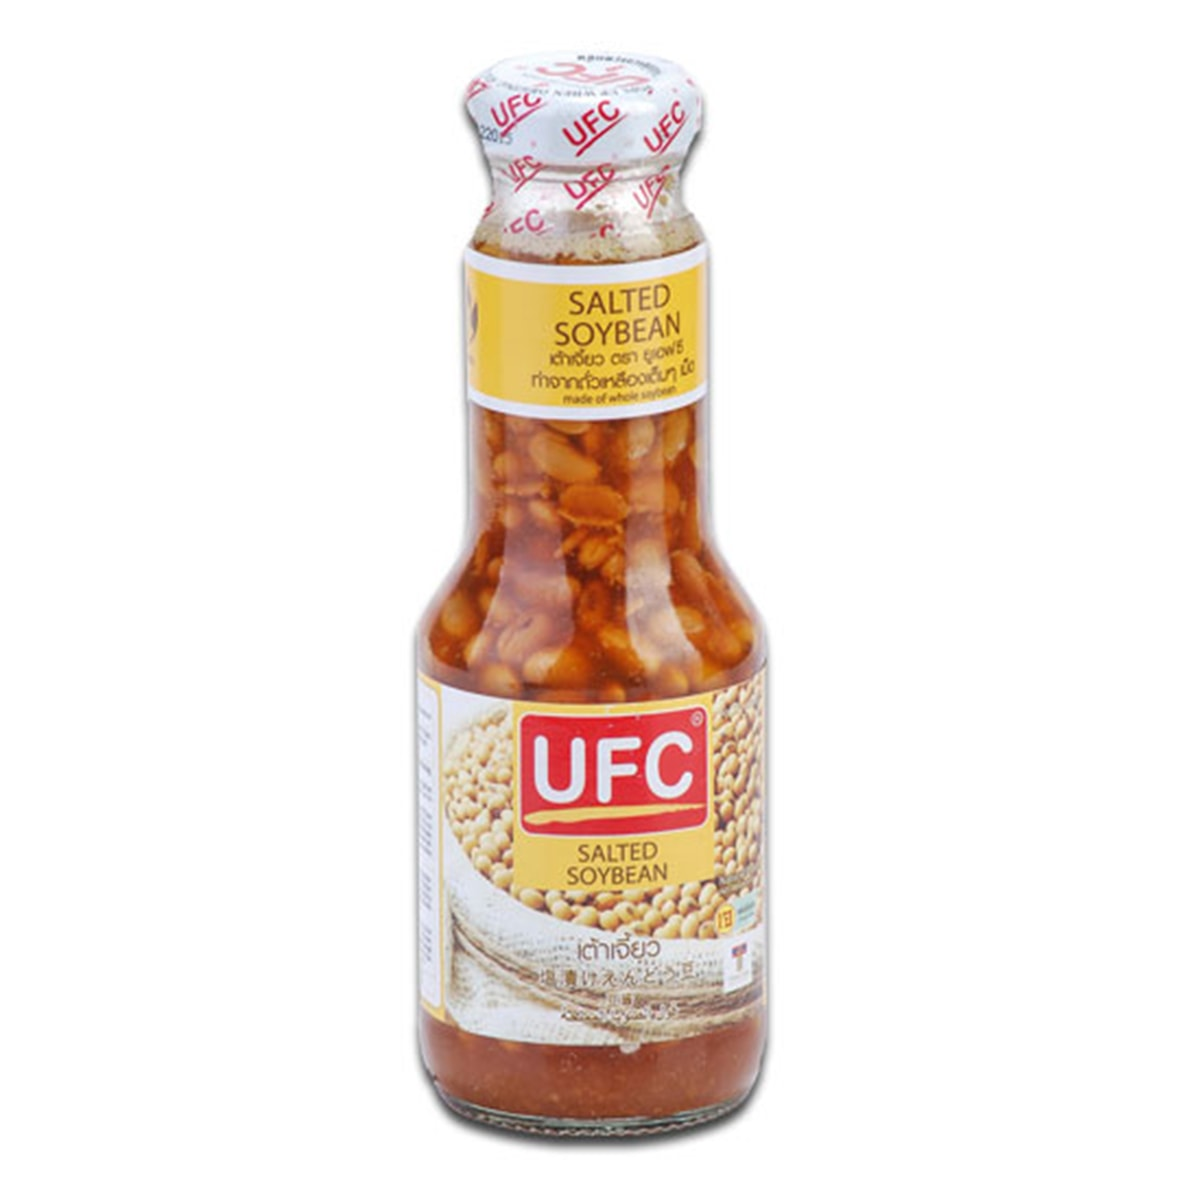 Buy UFC Salted Soybean - 340 gm